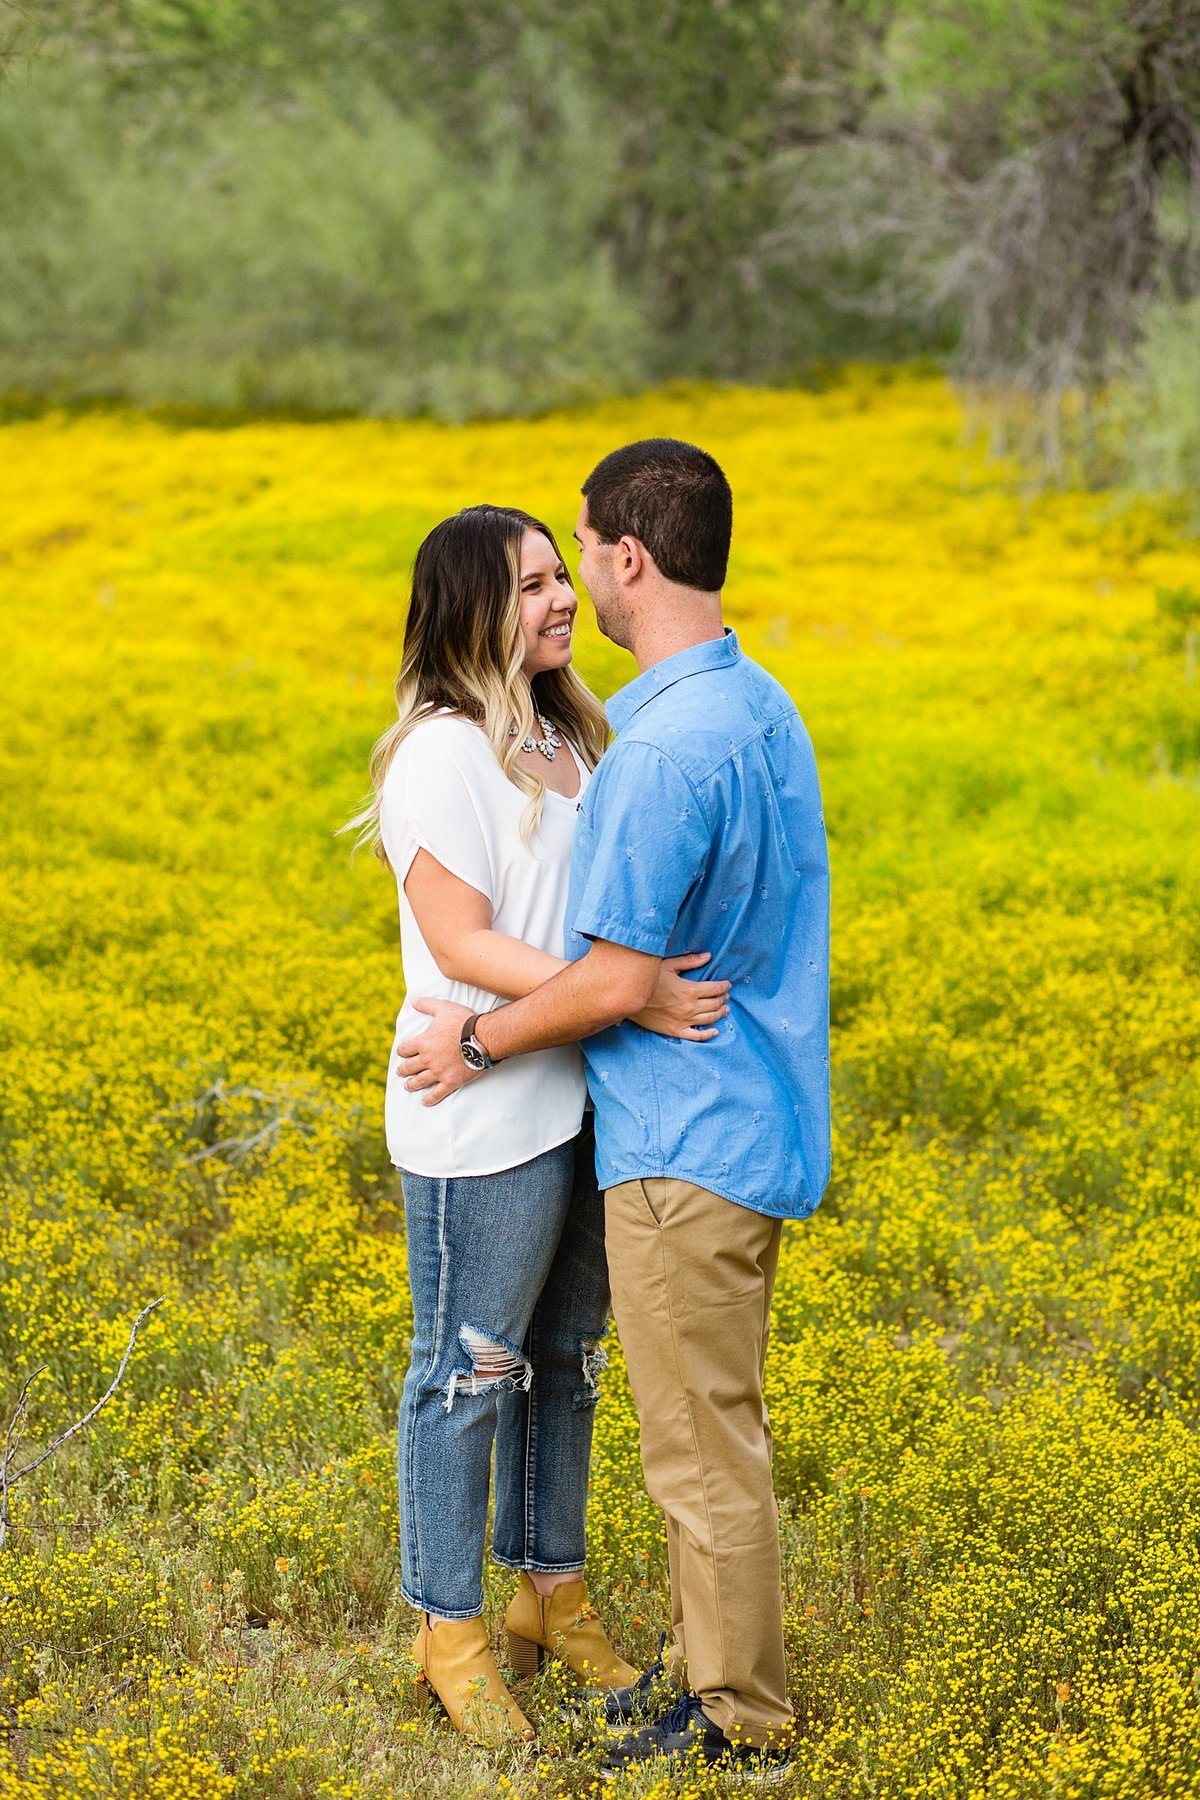 Couple smiling together in a yellow field of flowers during their Spring engagement session at Thunderbird Mountain by PMA Photography.